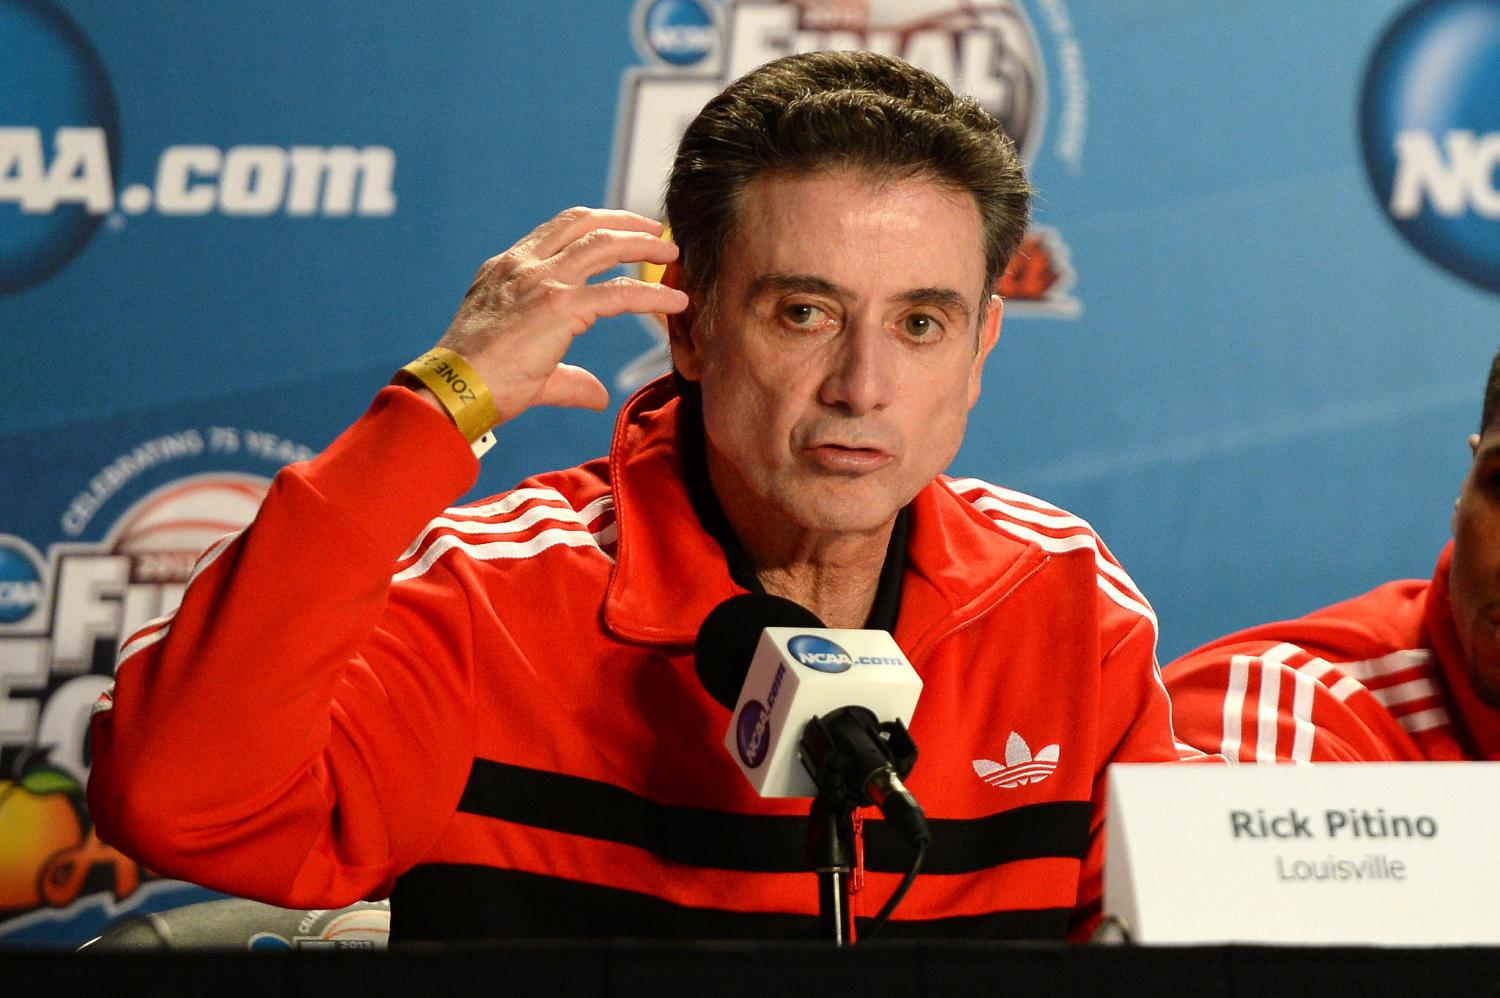 Pitino helped pay recruit's family $100k